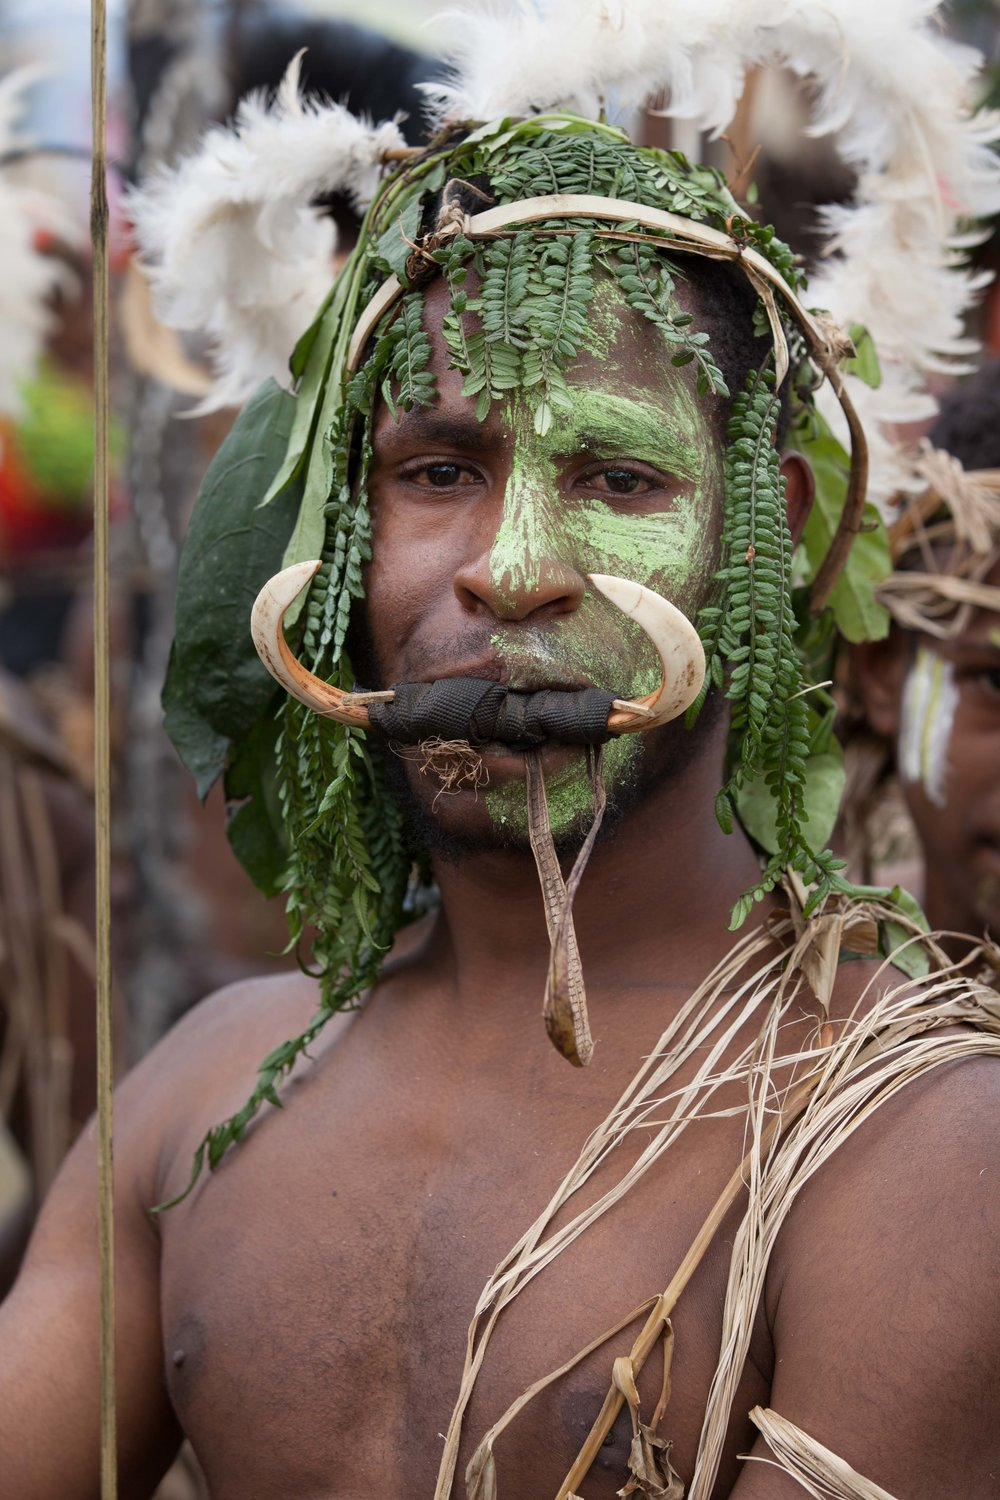 Boar's tusks complete the look. Goroka